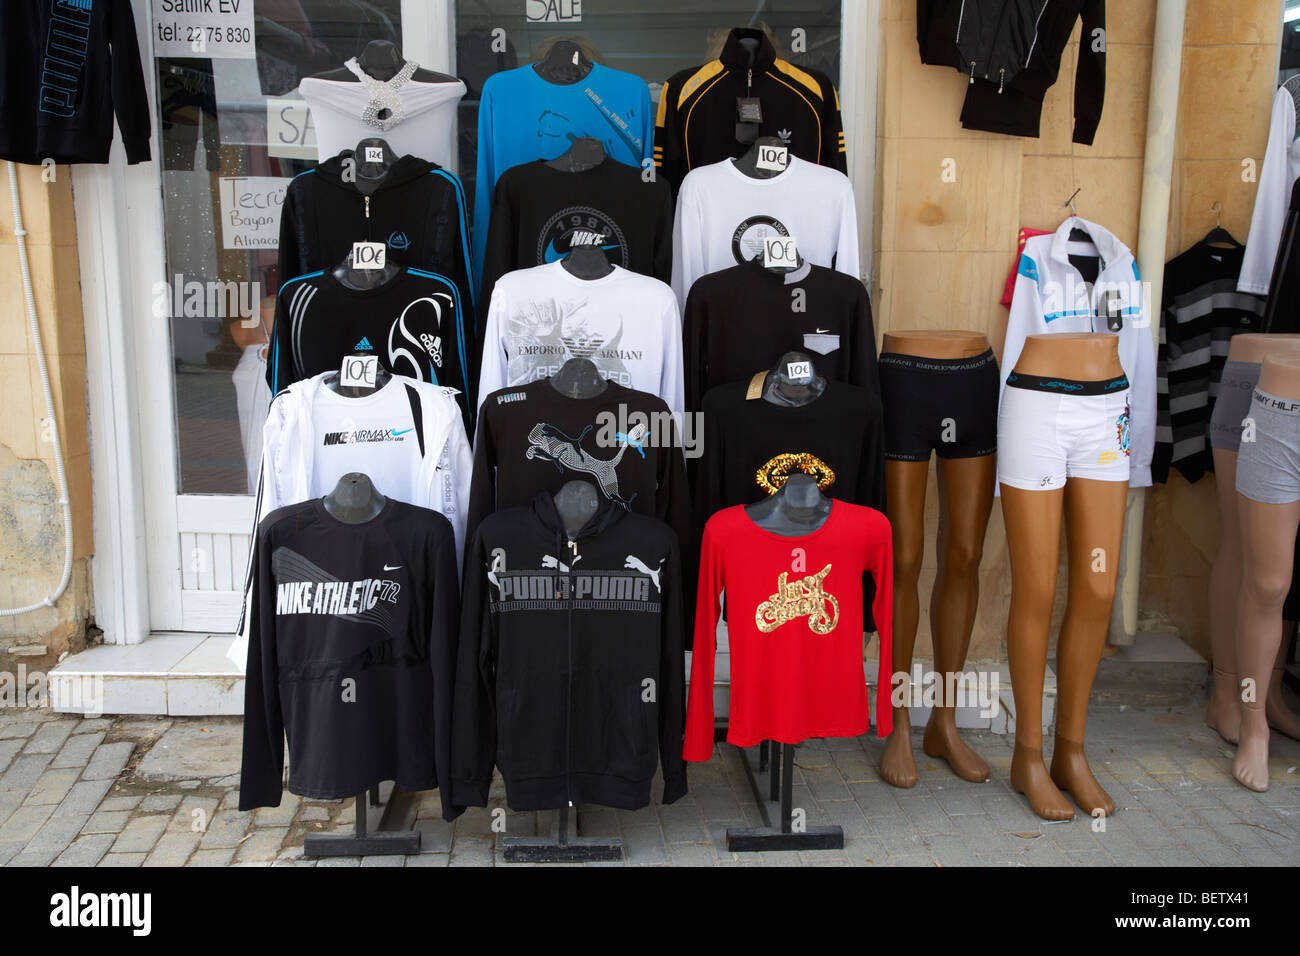 Cheap Designer Goods On Sale In A Shop In The Trnc Turkish Republic